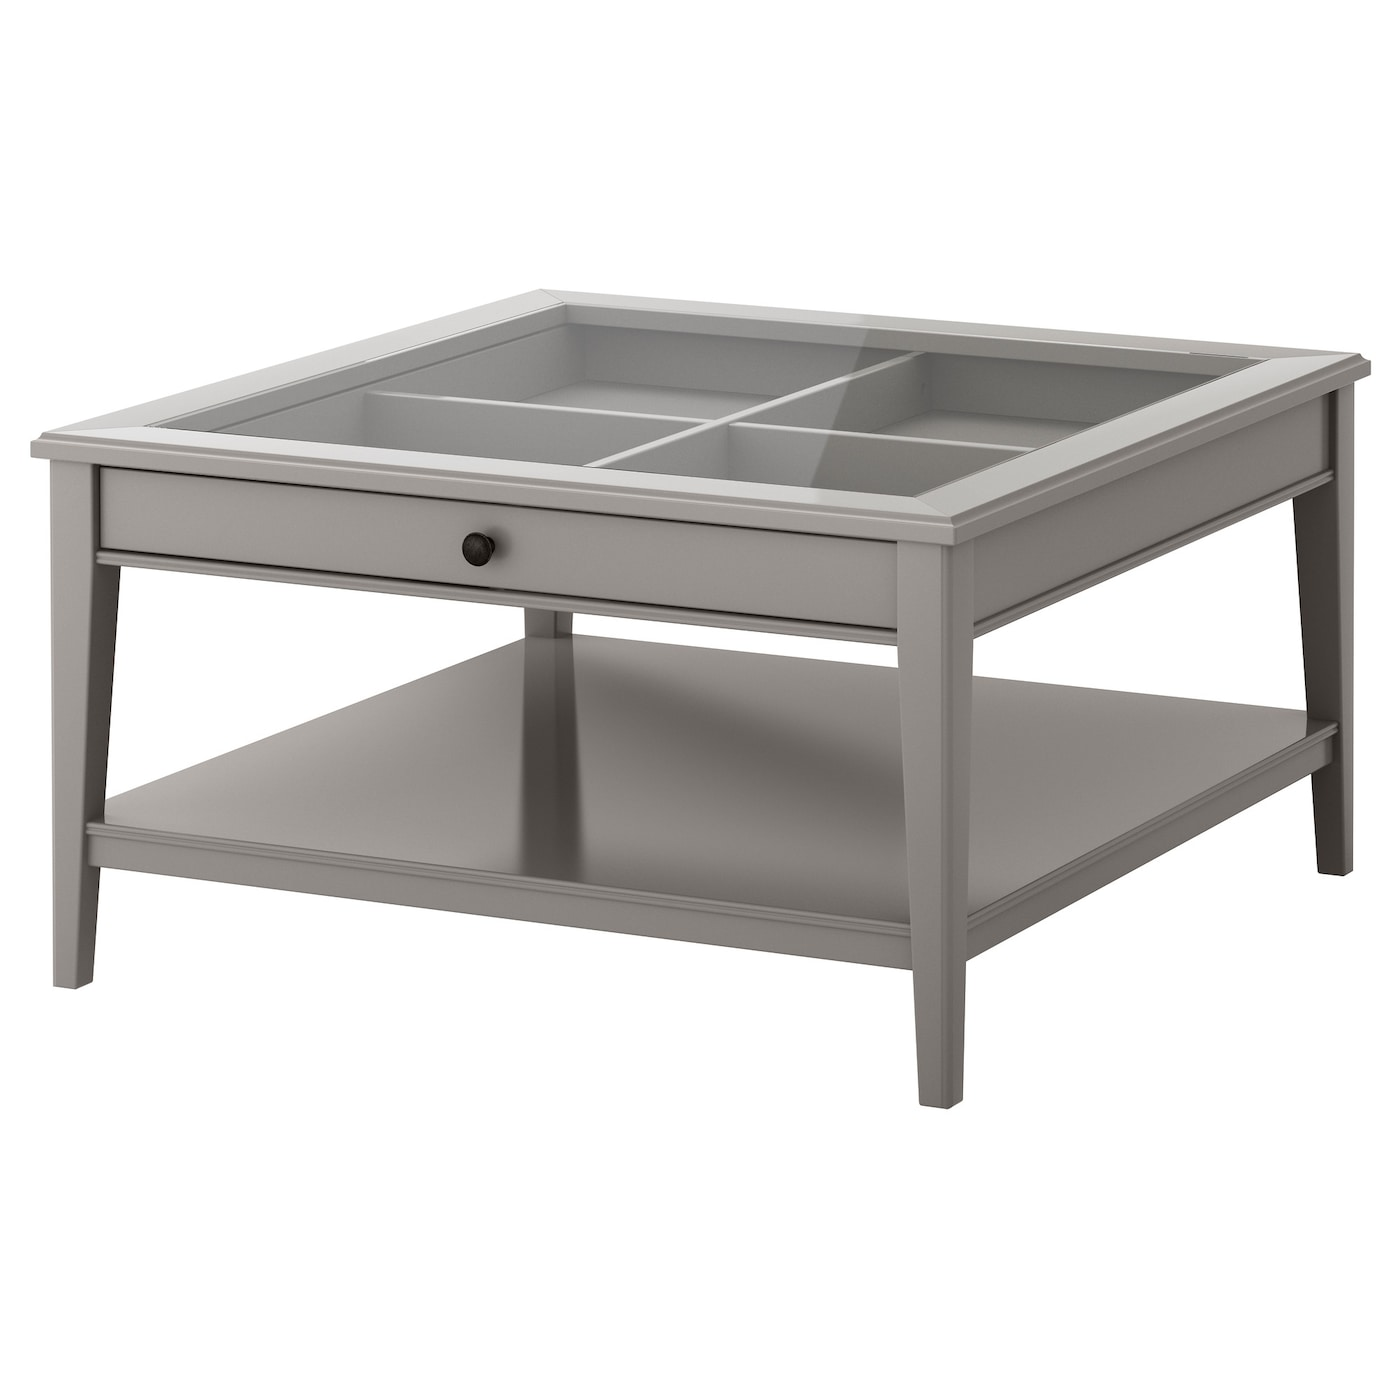 liatorp coffee table grey glass 93x93 cm ikea. Black Bedroom Furniture Sets. Home Design Ideas